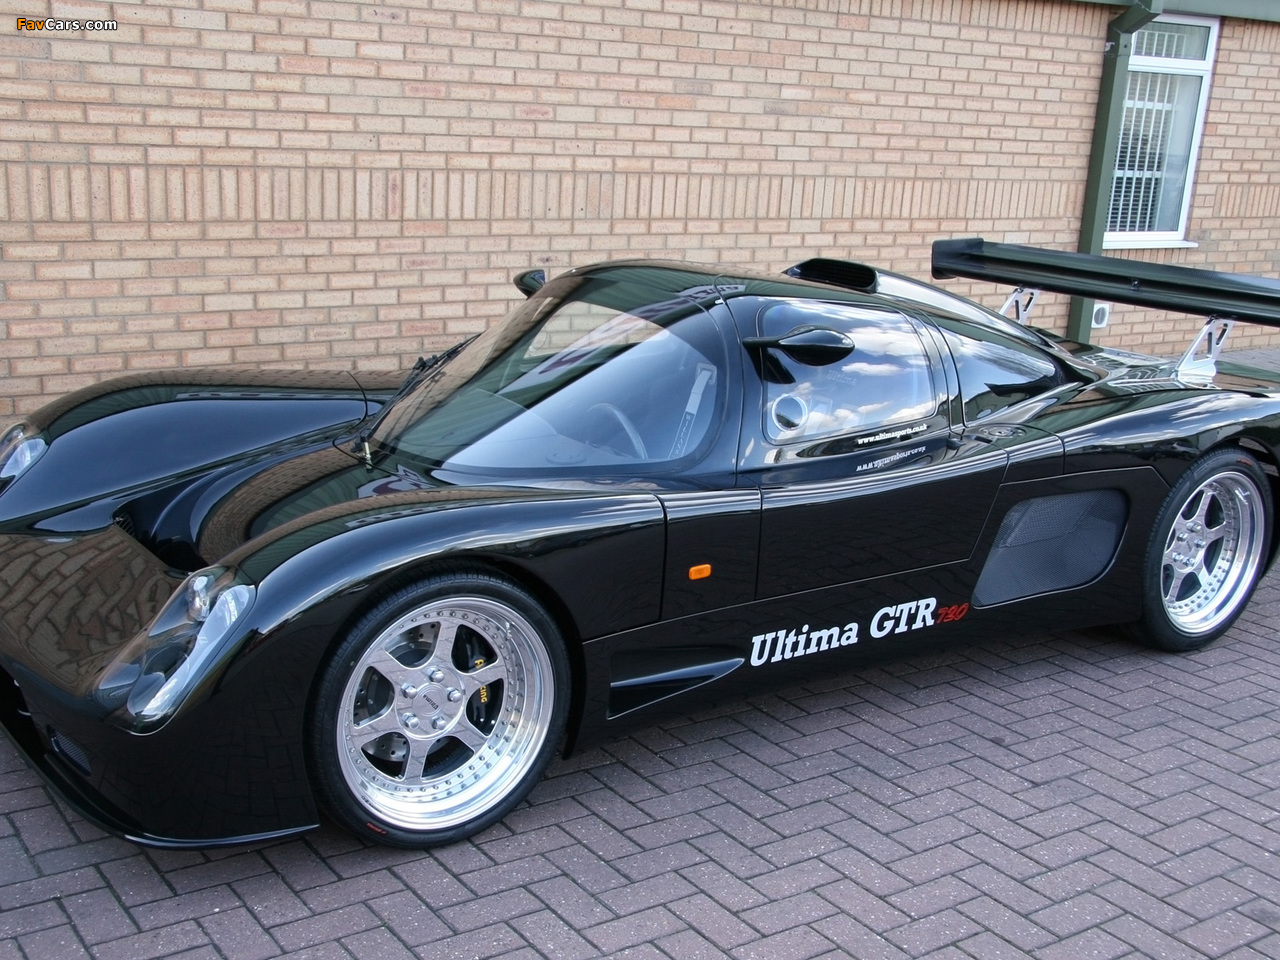 Ultima GTR 720 2013 images (1280 x 960)